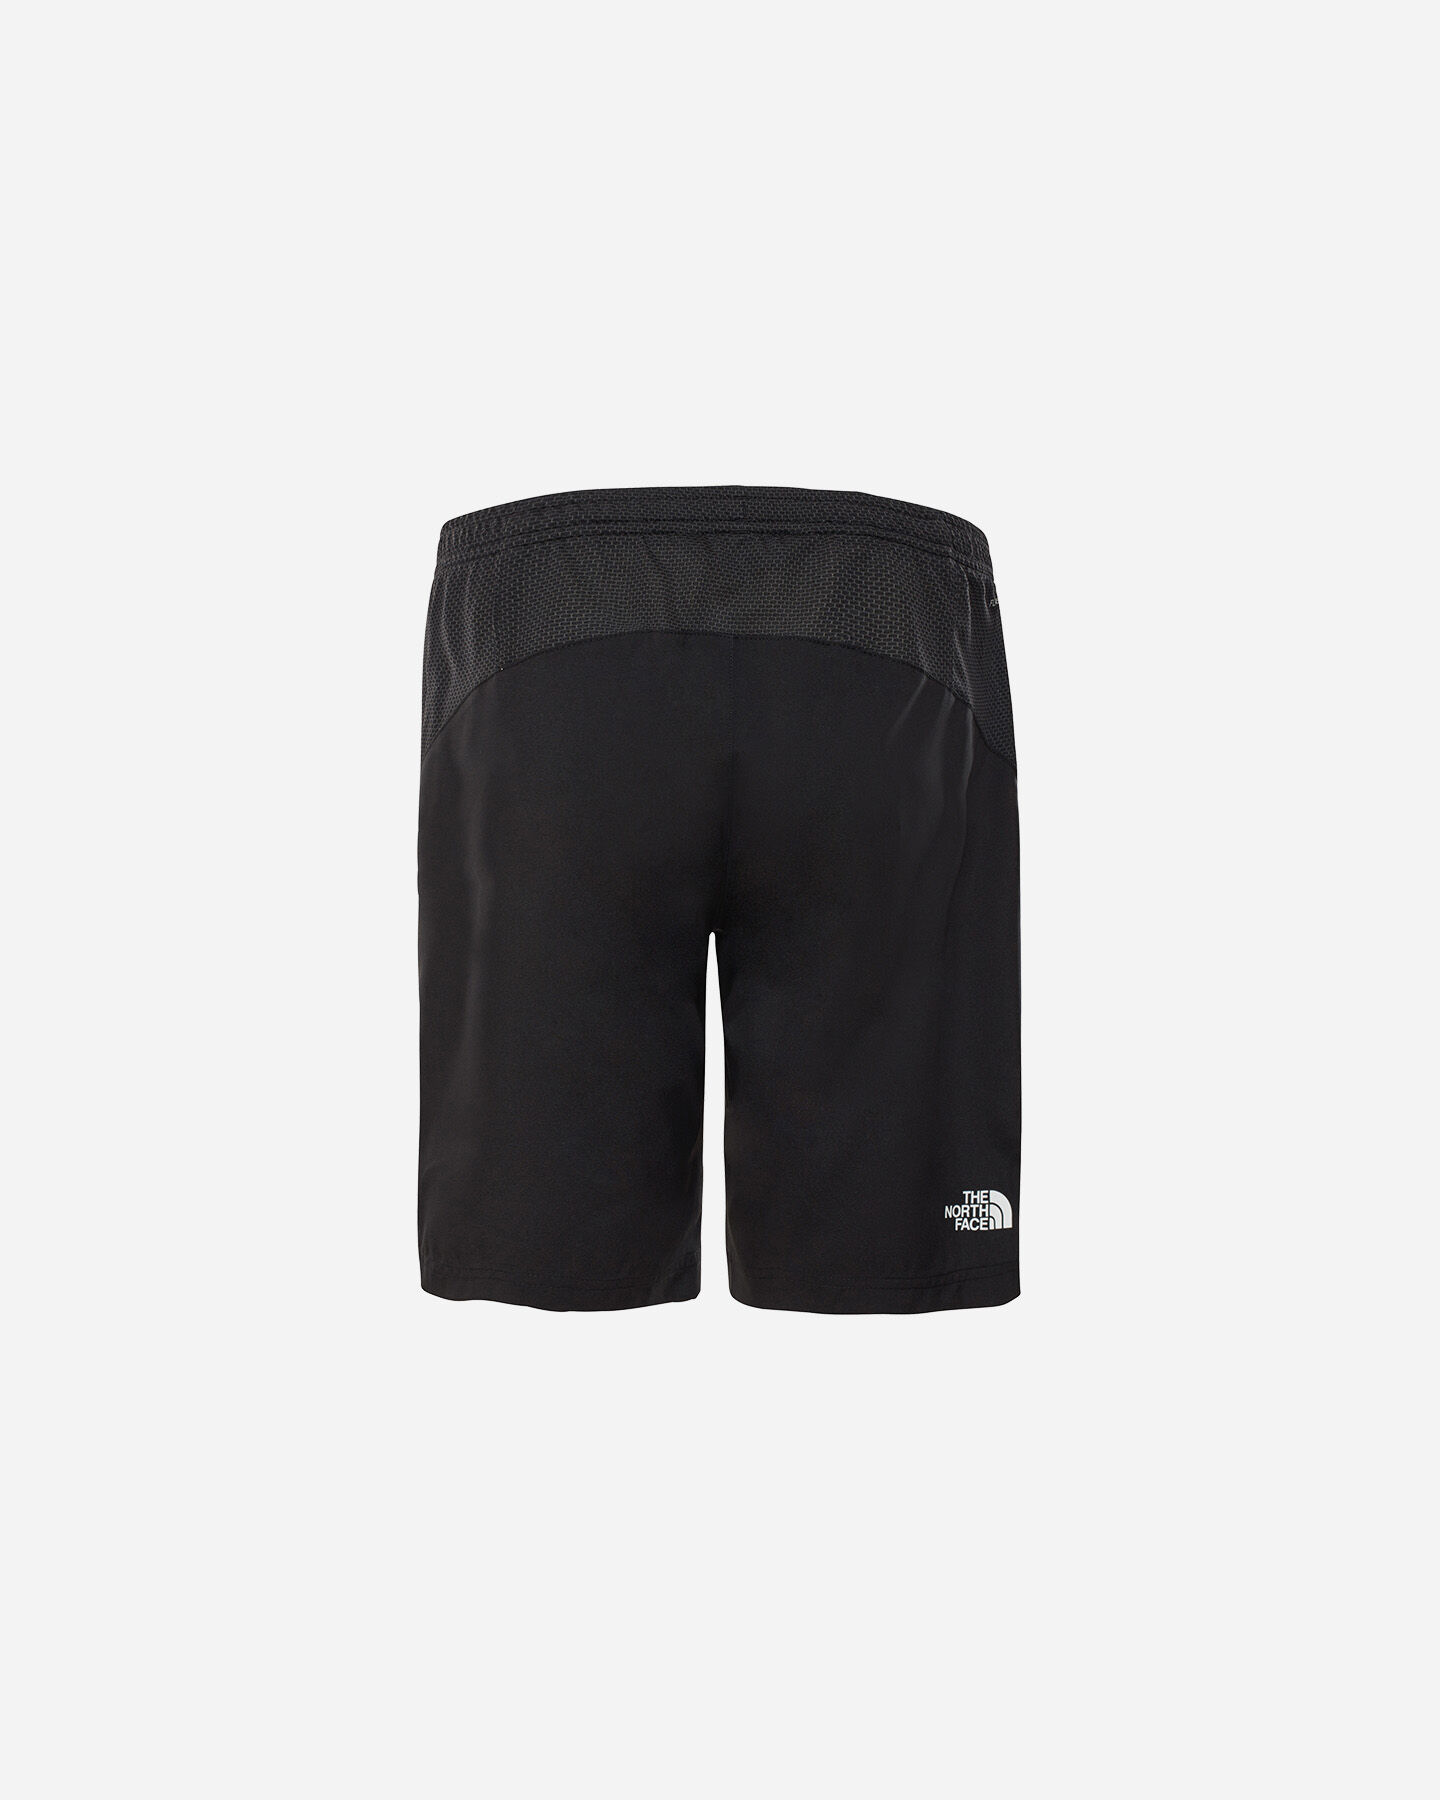 Pantaloncini THE NORTH FACE REACTOR JR S5018660 scatto 1